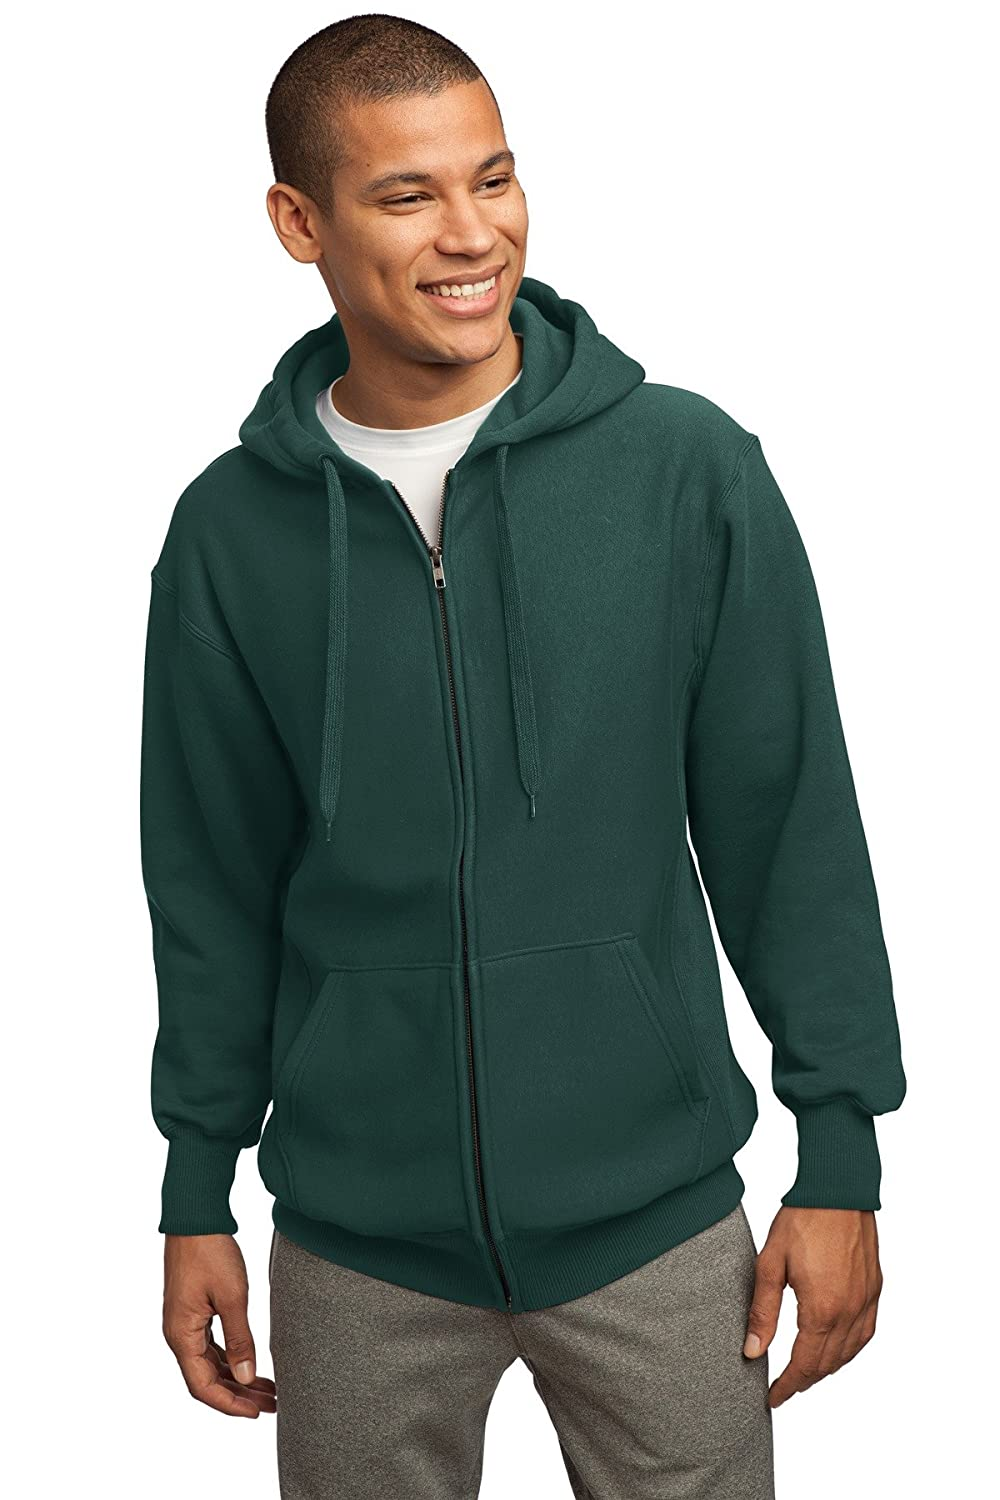 Sport-tek F282 Super Heavyweight Full Zip Hooded